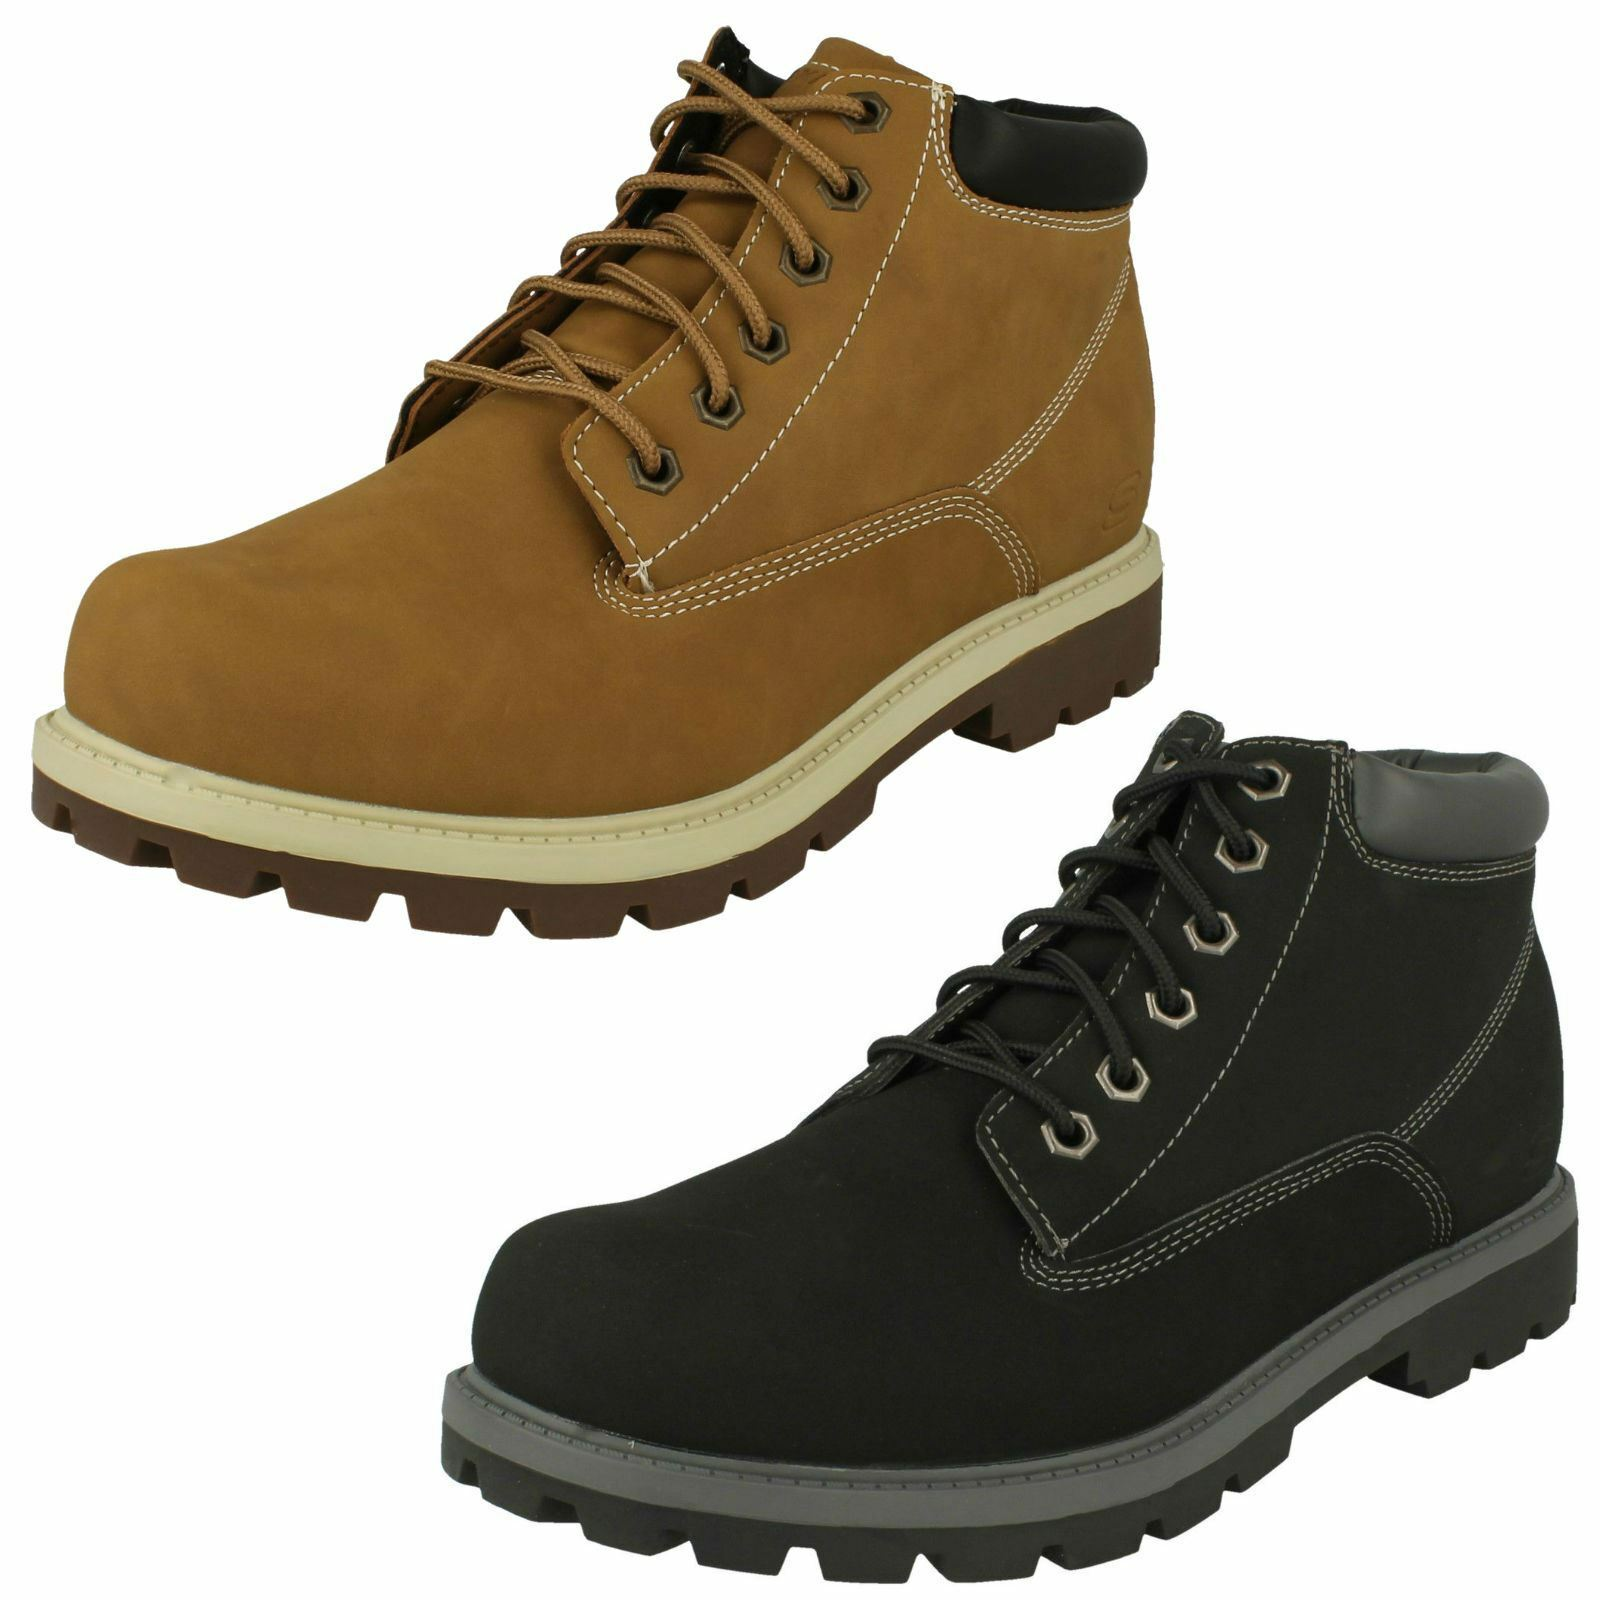 Mens Skechers Rounded Toe Casual Everyday Lace Up Synthetic Ankle Stiefel Amado